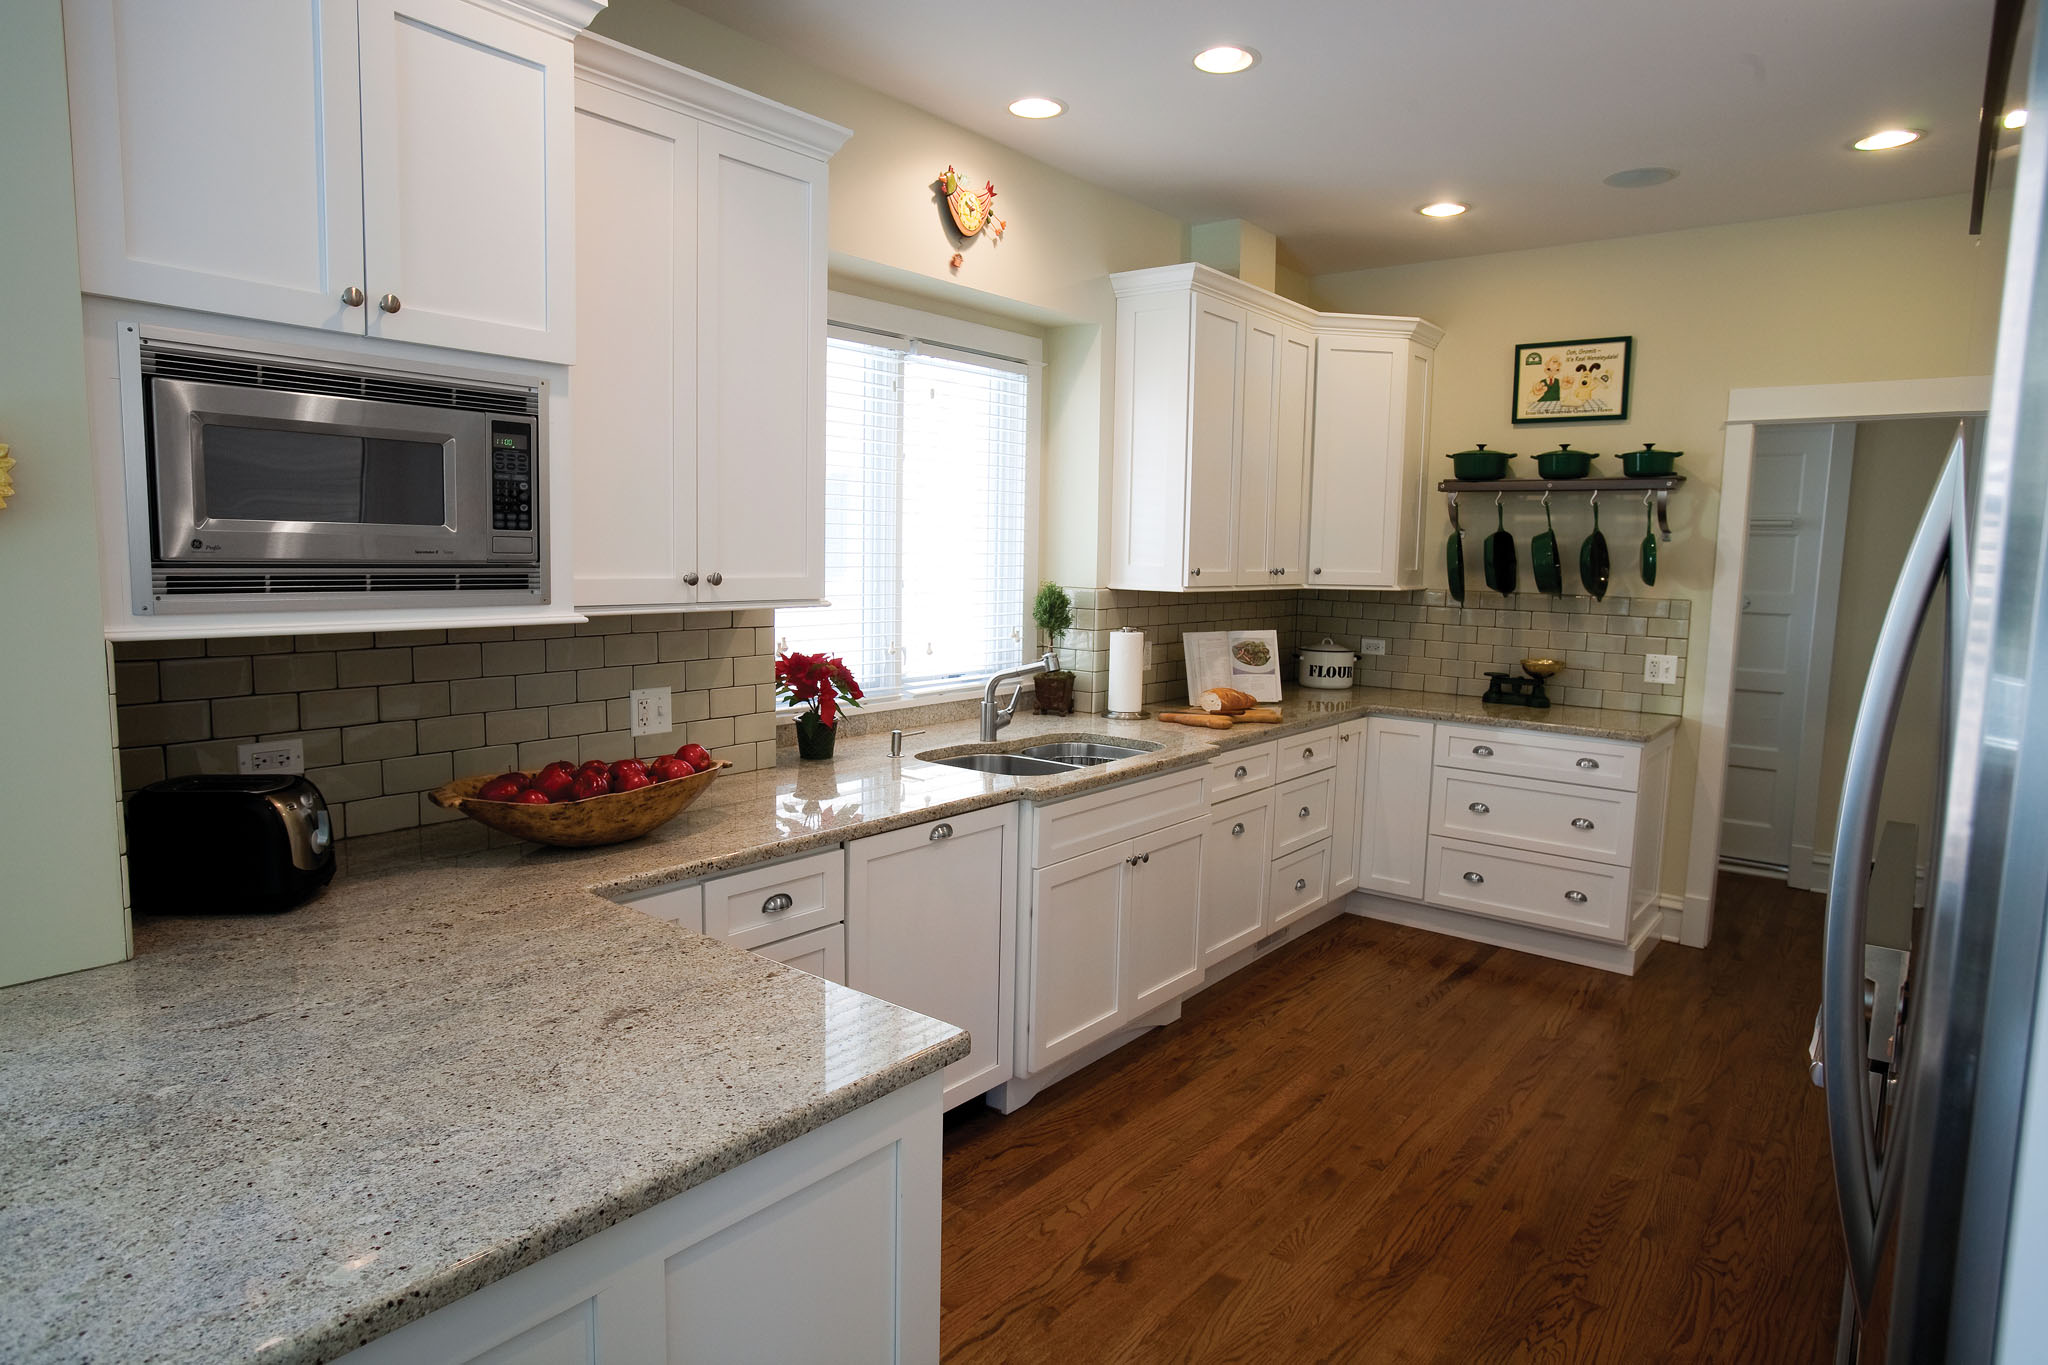 nj kitchen renovation kitchen renovation contractors new jersey nj